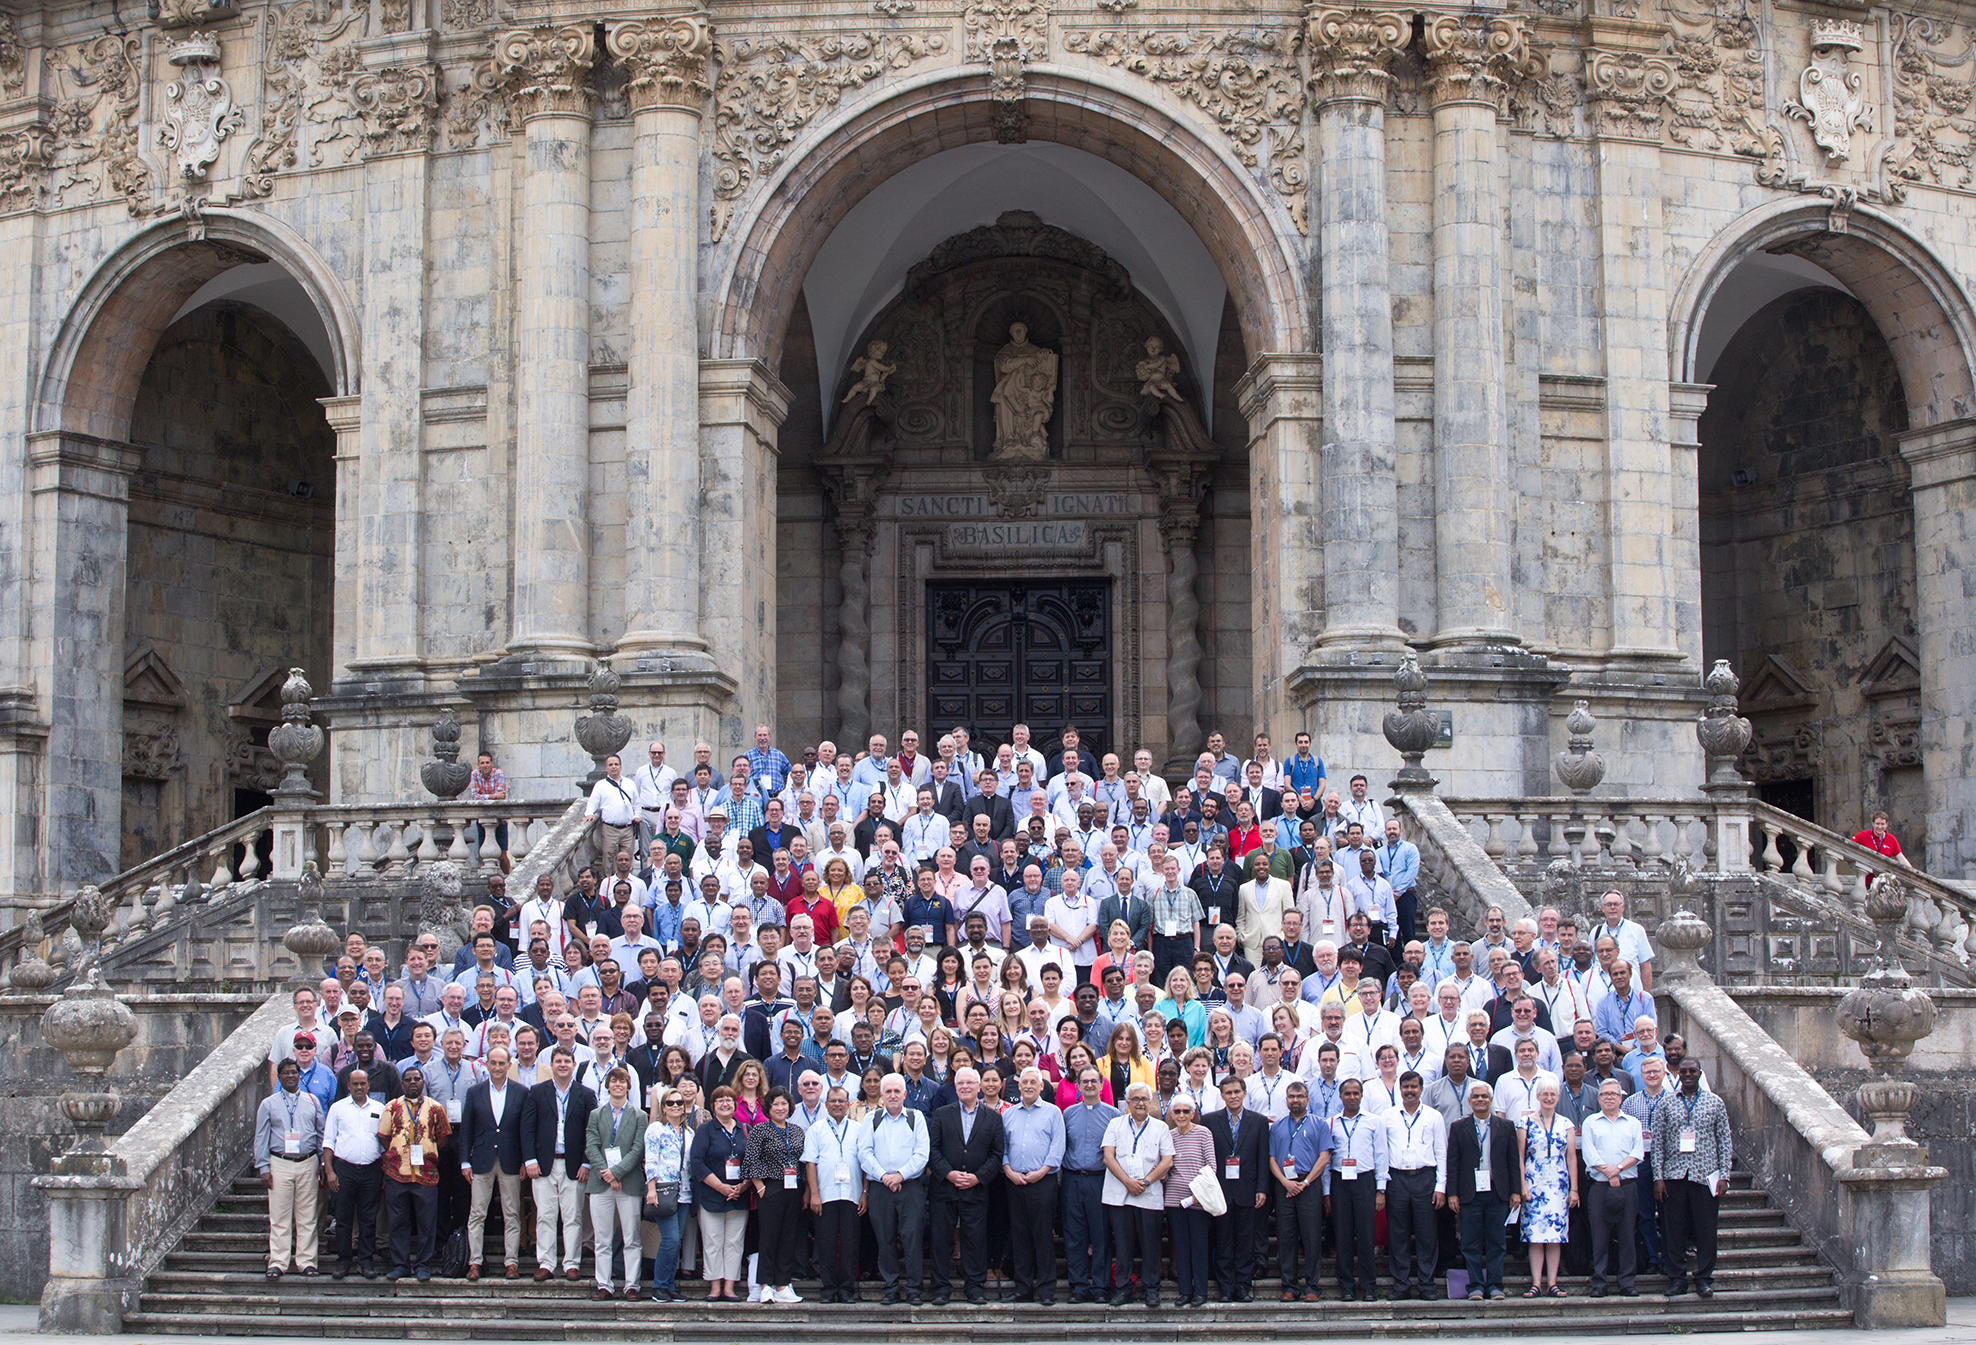 Representatives from nearly 200 Jesuit institutions of higher education across the world gathered in Bilbao, Spain for the launch of IAJU on July 11, 2018 (photo courtesy of Ignacio Garrido Cruz)